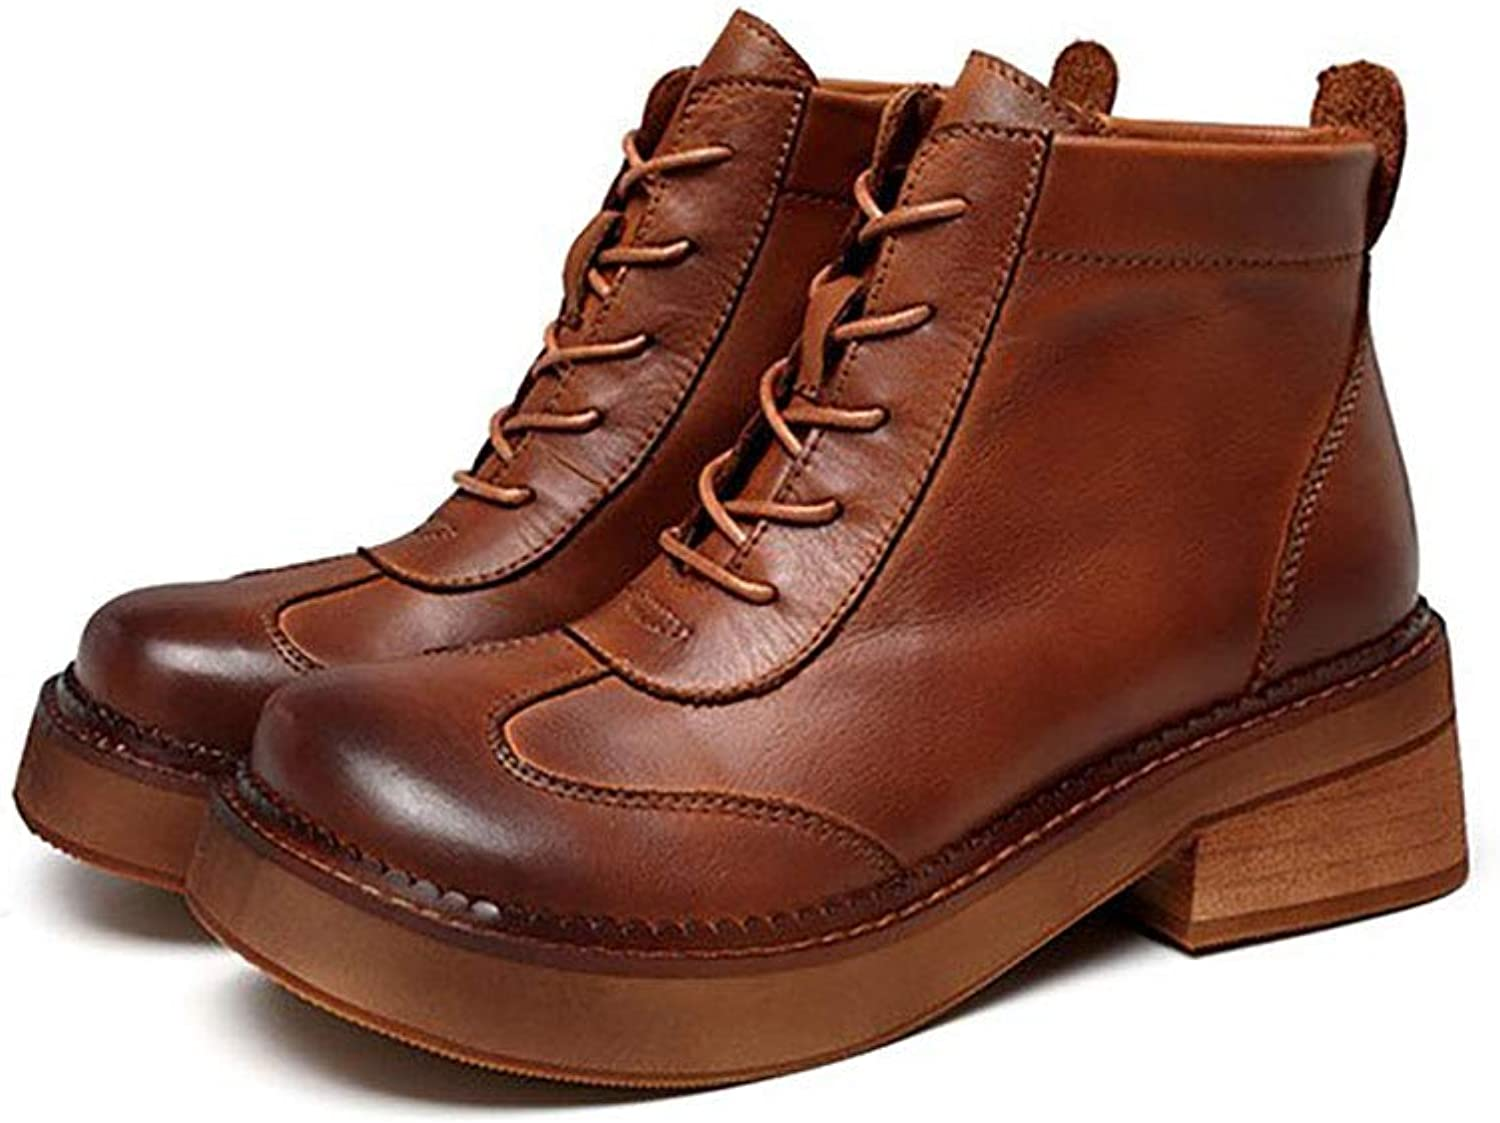 AW-YTXYDY Women's Vintage Lace-up Martin Boots, Cowhide Material, Work Shopping Travel, Wear Slip Resistant (35-40 Yards) (color   Brown, Size   40)